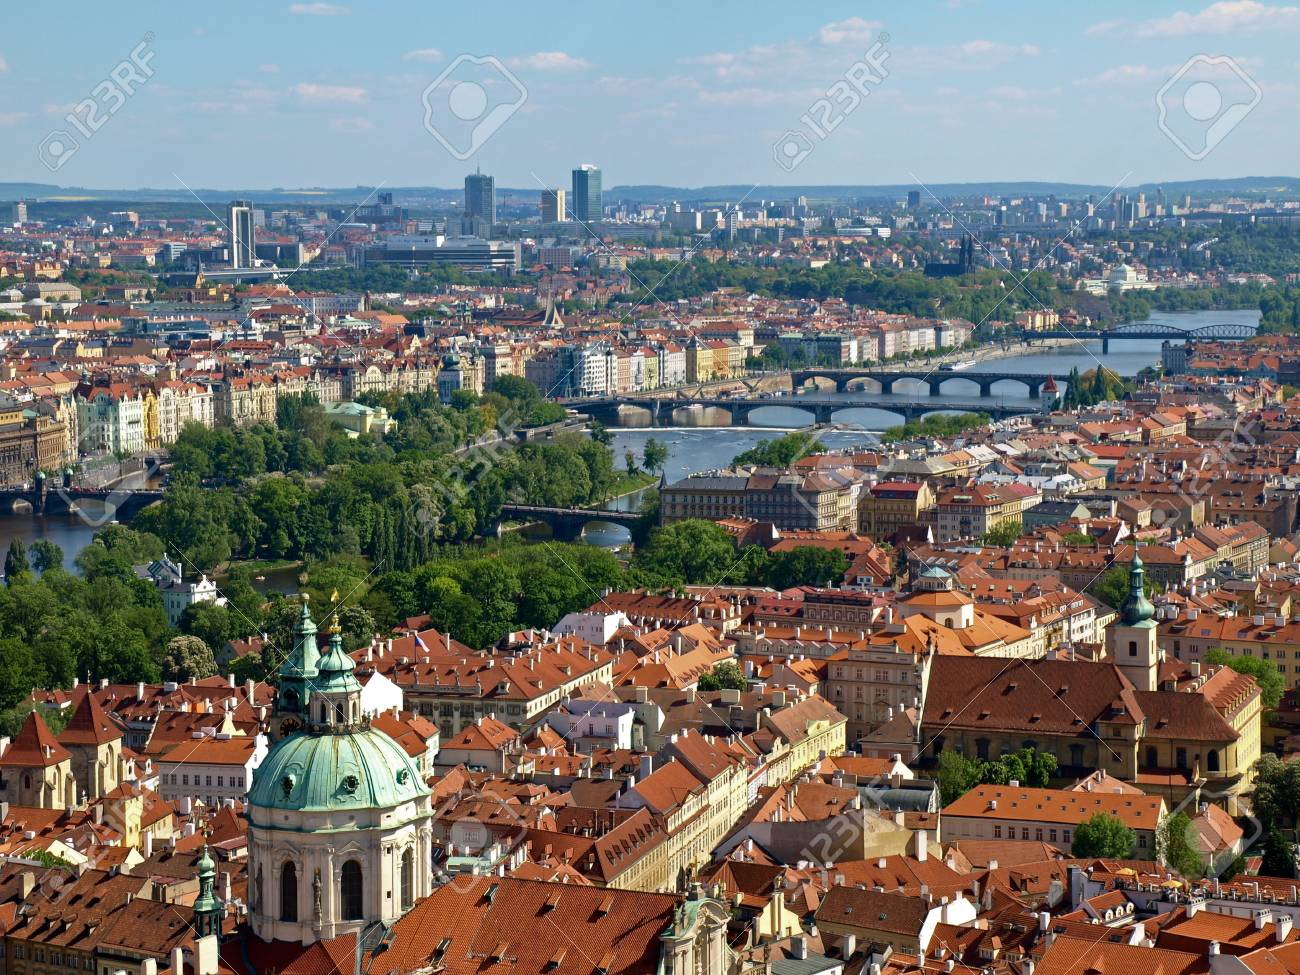 The view from the bell tower of the Cathedral of St. Vitus on the south-east - Vltava river, bridges Legia, Jirasek, Palacky, dancing house. Red tiled roofs, modern high-rise buildings, river, bridges, green parks. Stock Photo - 18145004